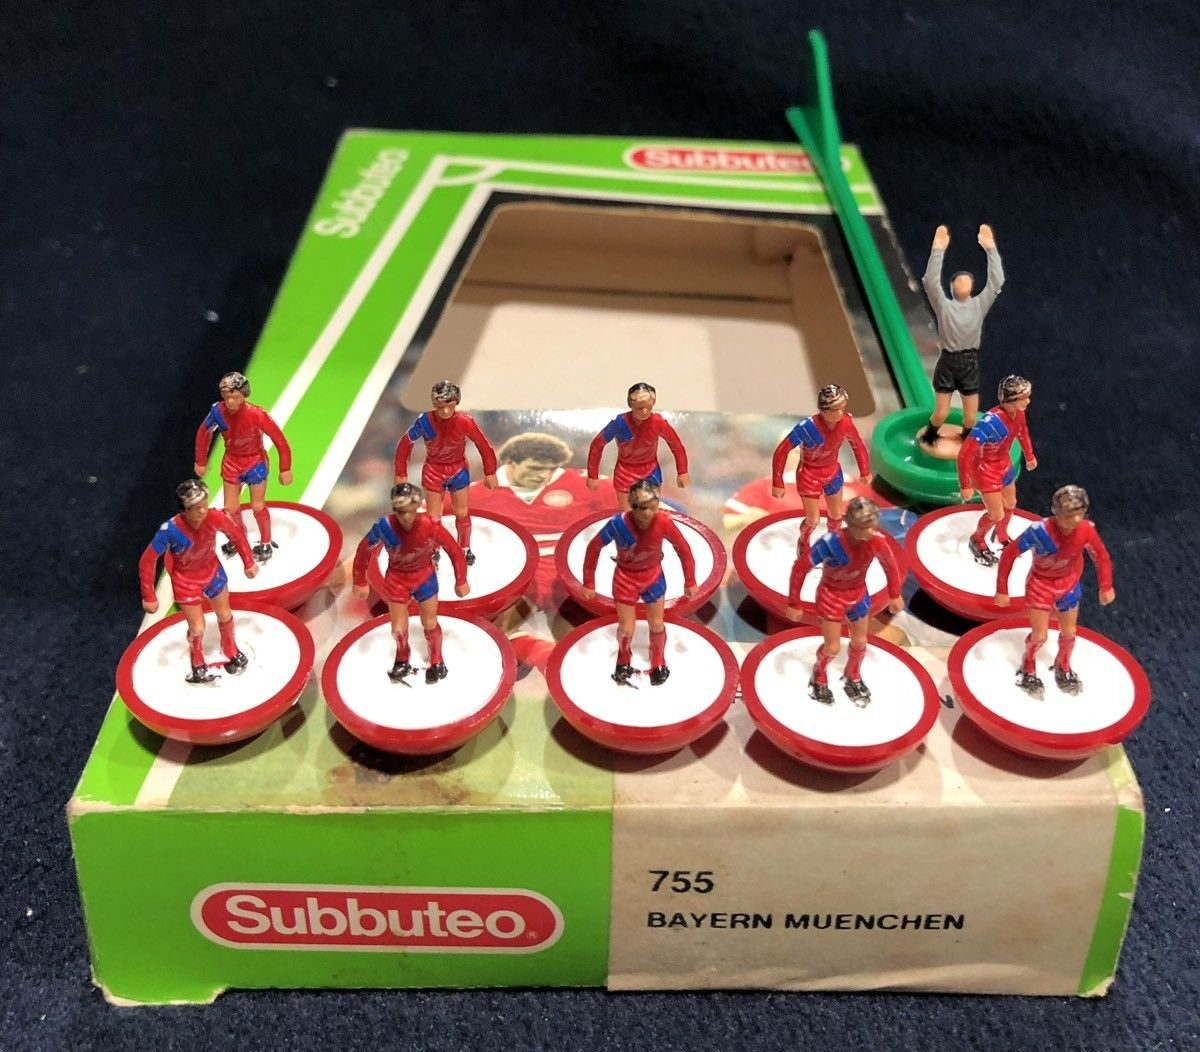 Nearly every Bayern Munich Subbuteo team is officially the wrong colour – this is why